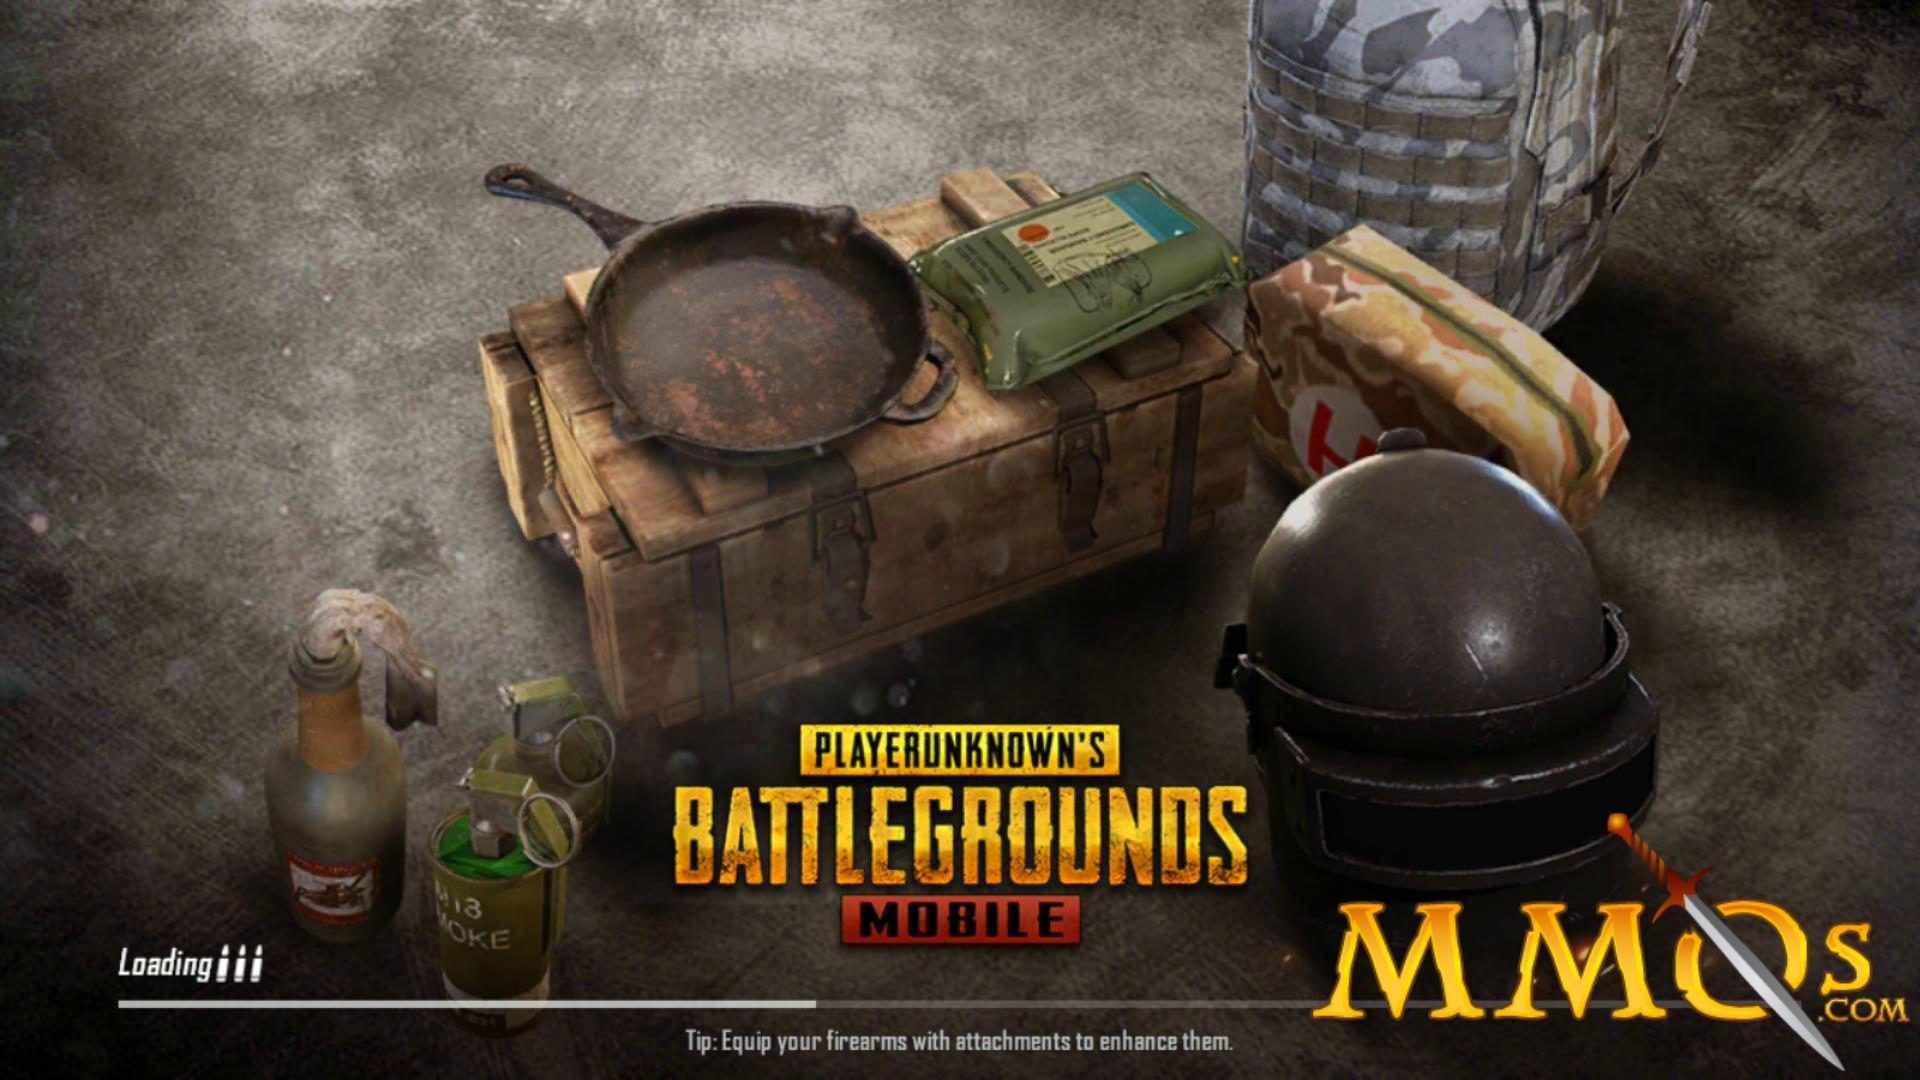 What happens if you run a PUBG MOBILE APK without